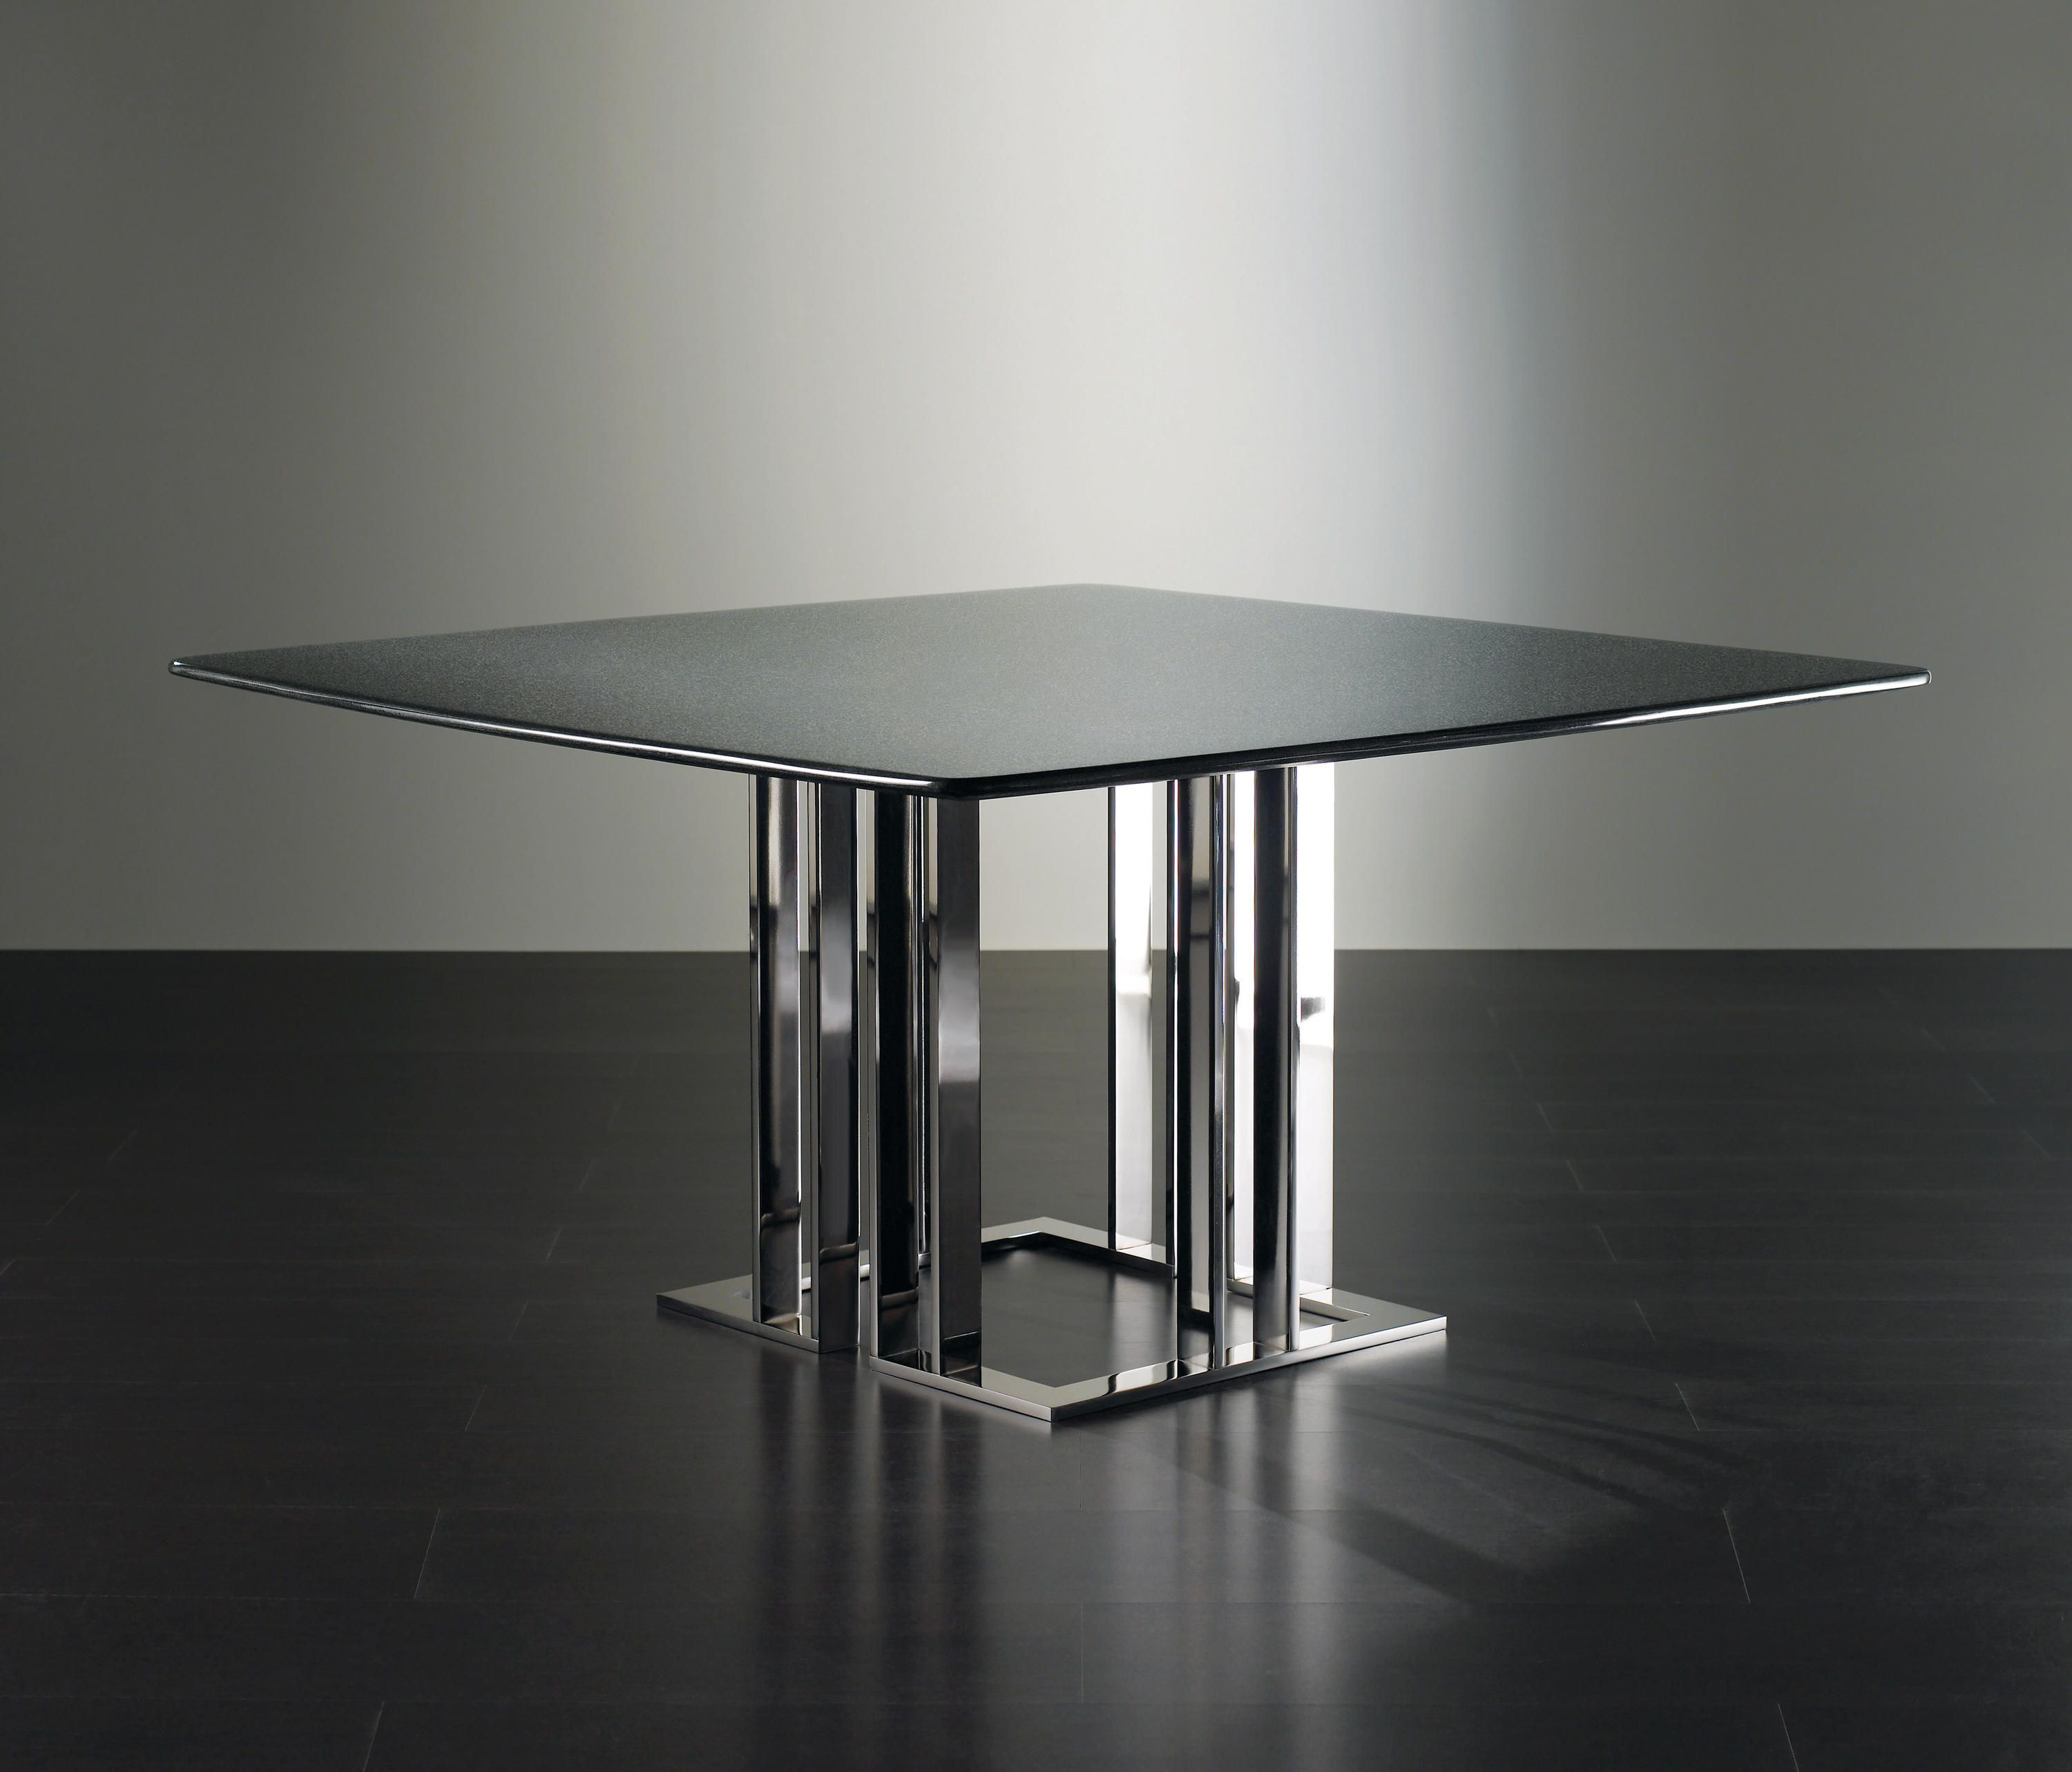 9a0dd6039659c5e87a661579409f84cf Top Result 50 Luxury Black and White Coffee Table Image 2017 Shdy7